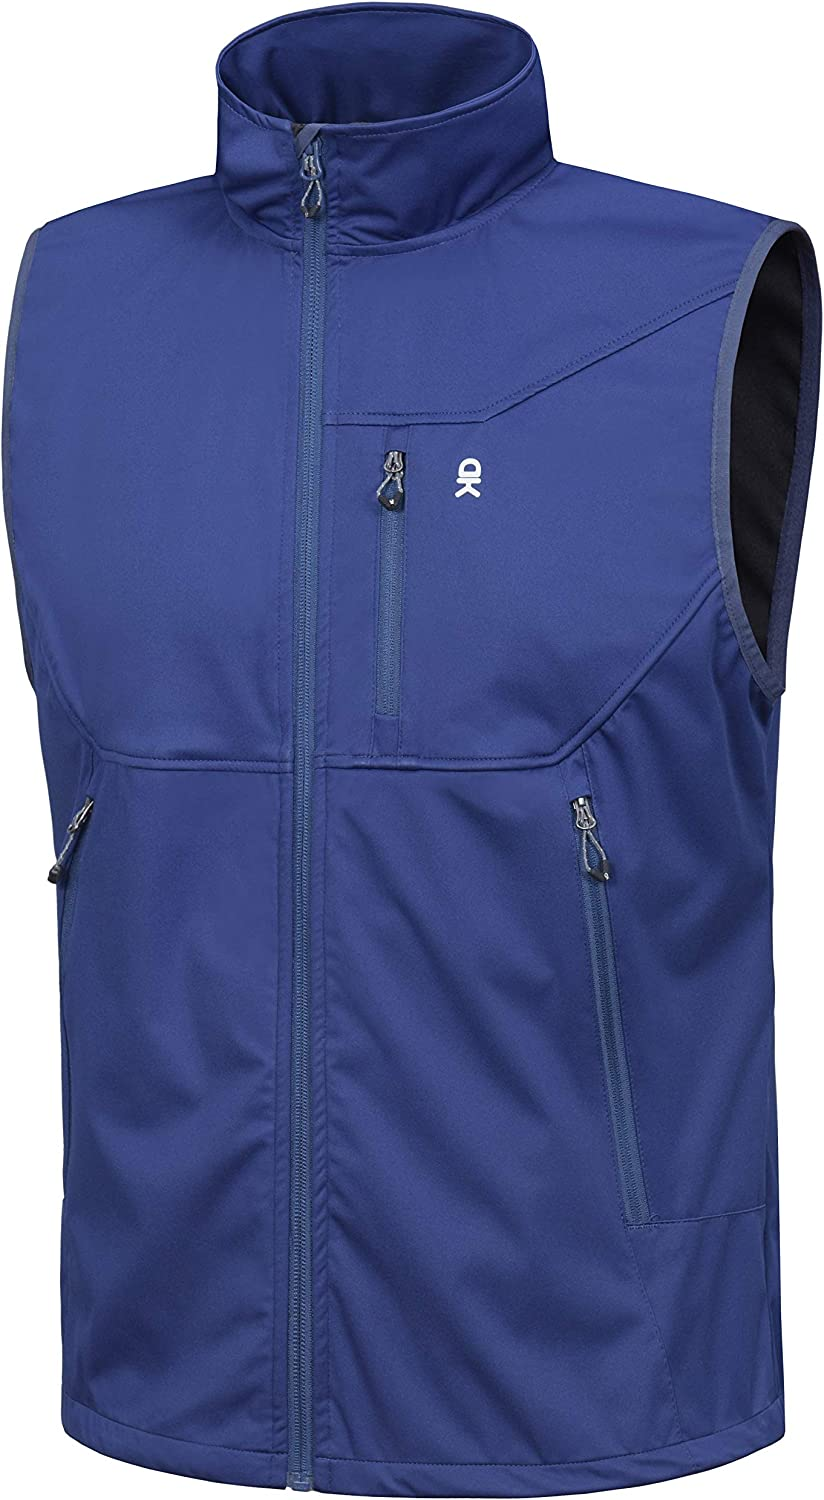 Little Donkey Max 100% quality warranty! 52% OFF Andy Men's Lightweight Vest S Windproof Softshell